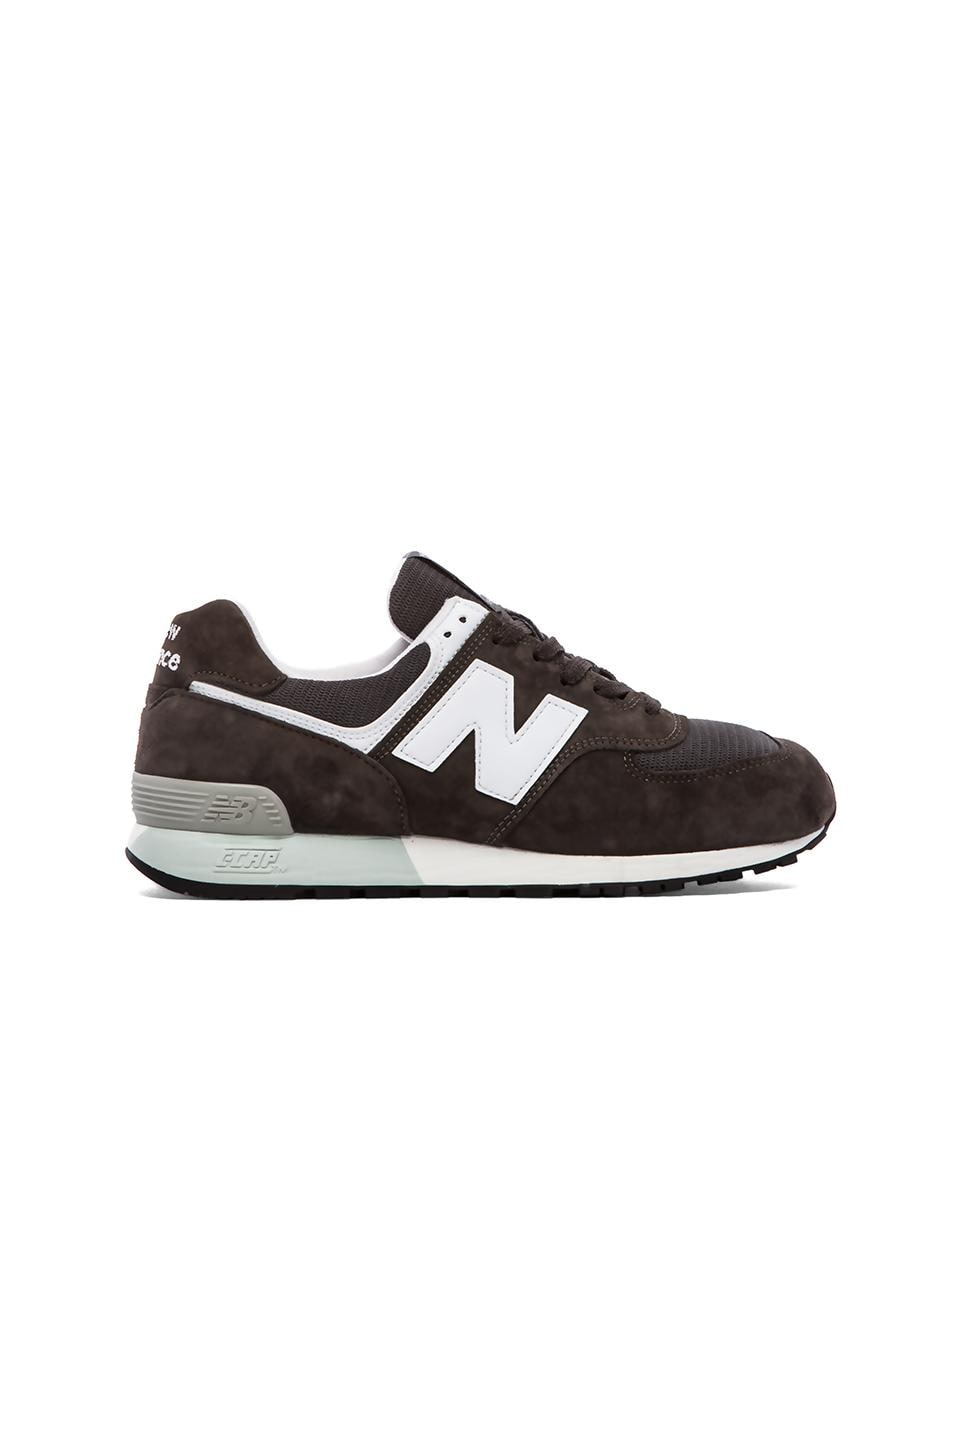 New Balance Made in USA US576 in Grey & White